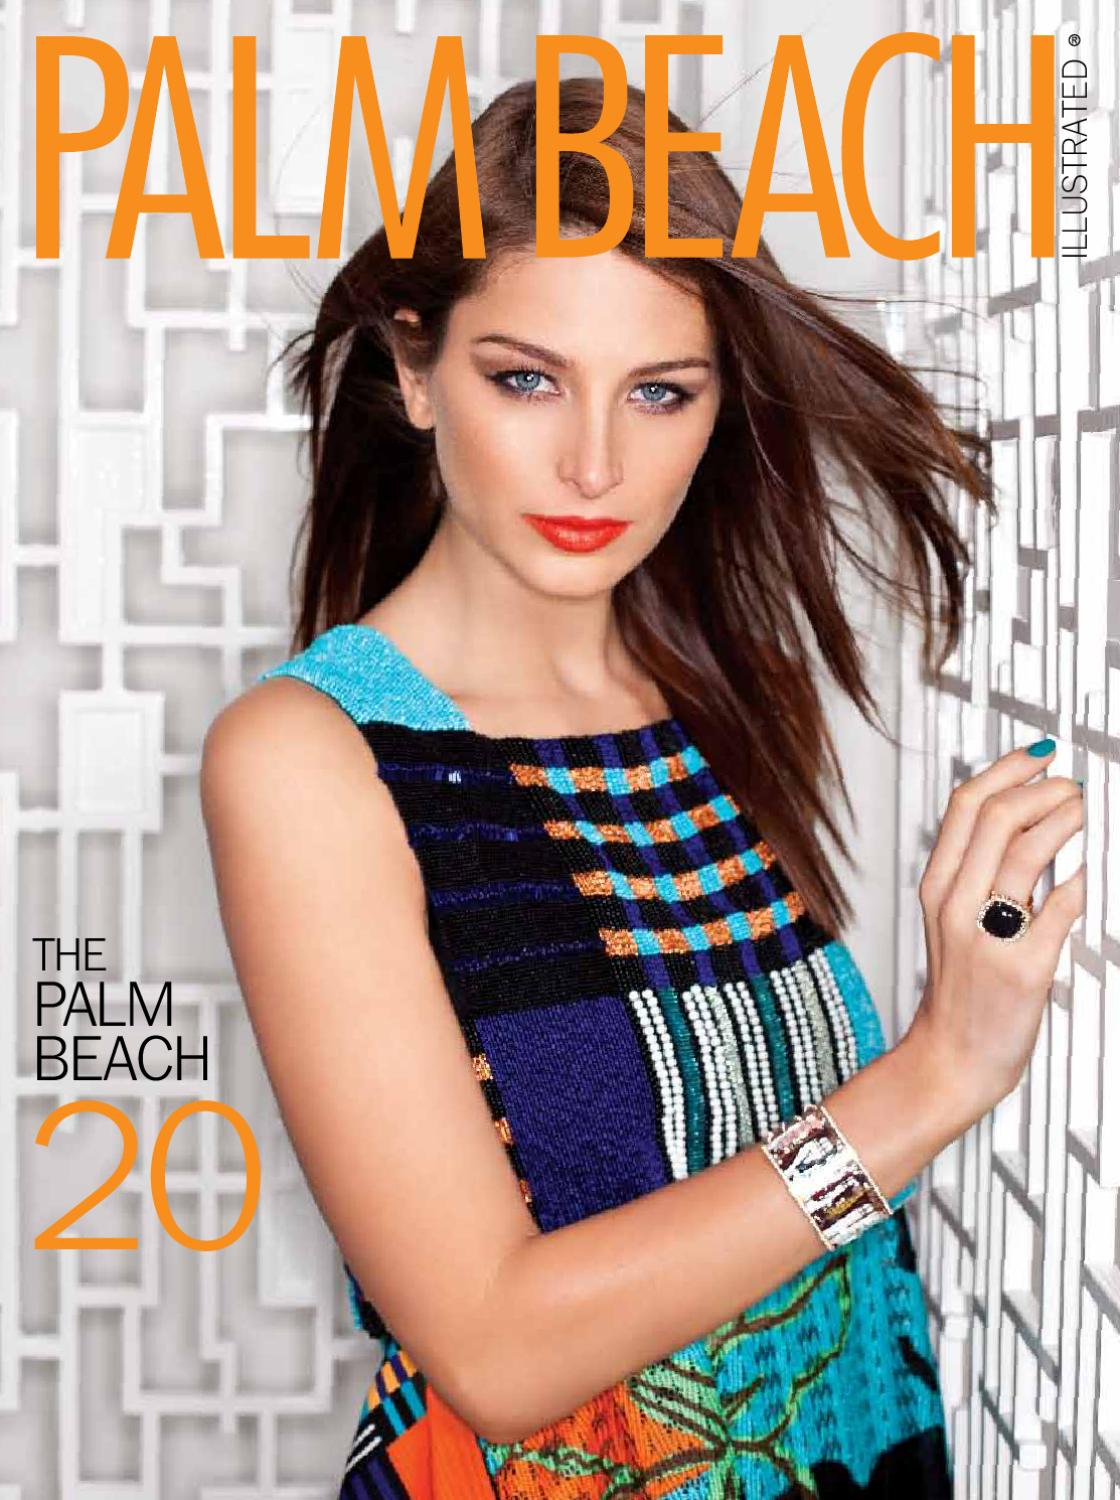 Palm Beach Illustrated March 2010 by Palm Beach Media Group - issuu